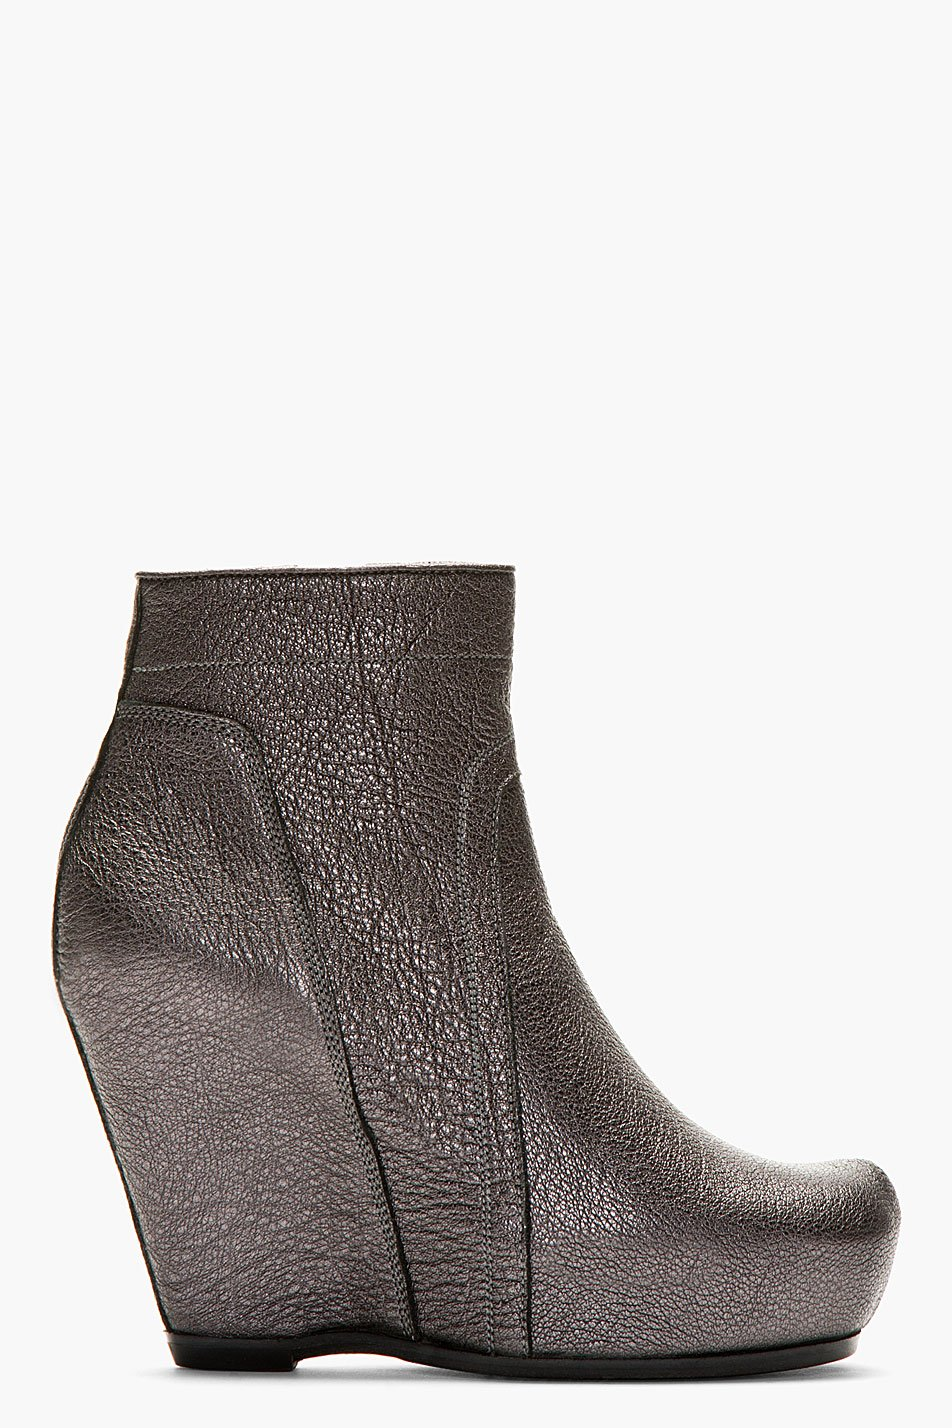 Rick owens metallic pewter leather classic wedge boots